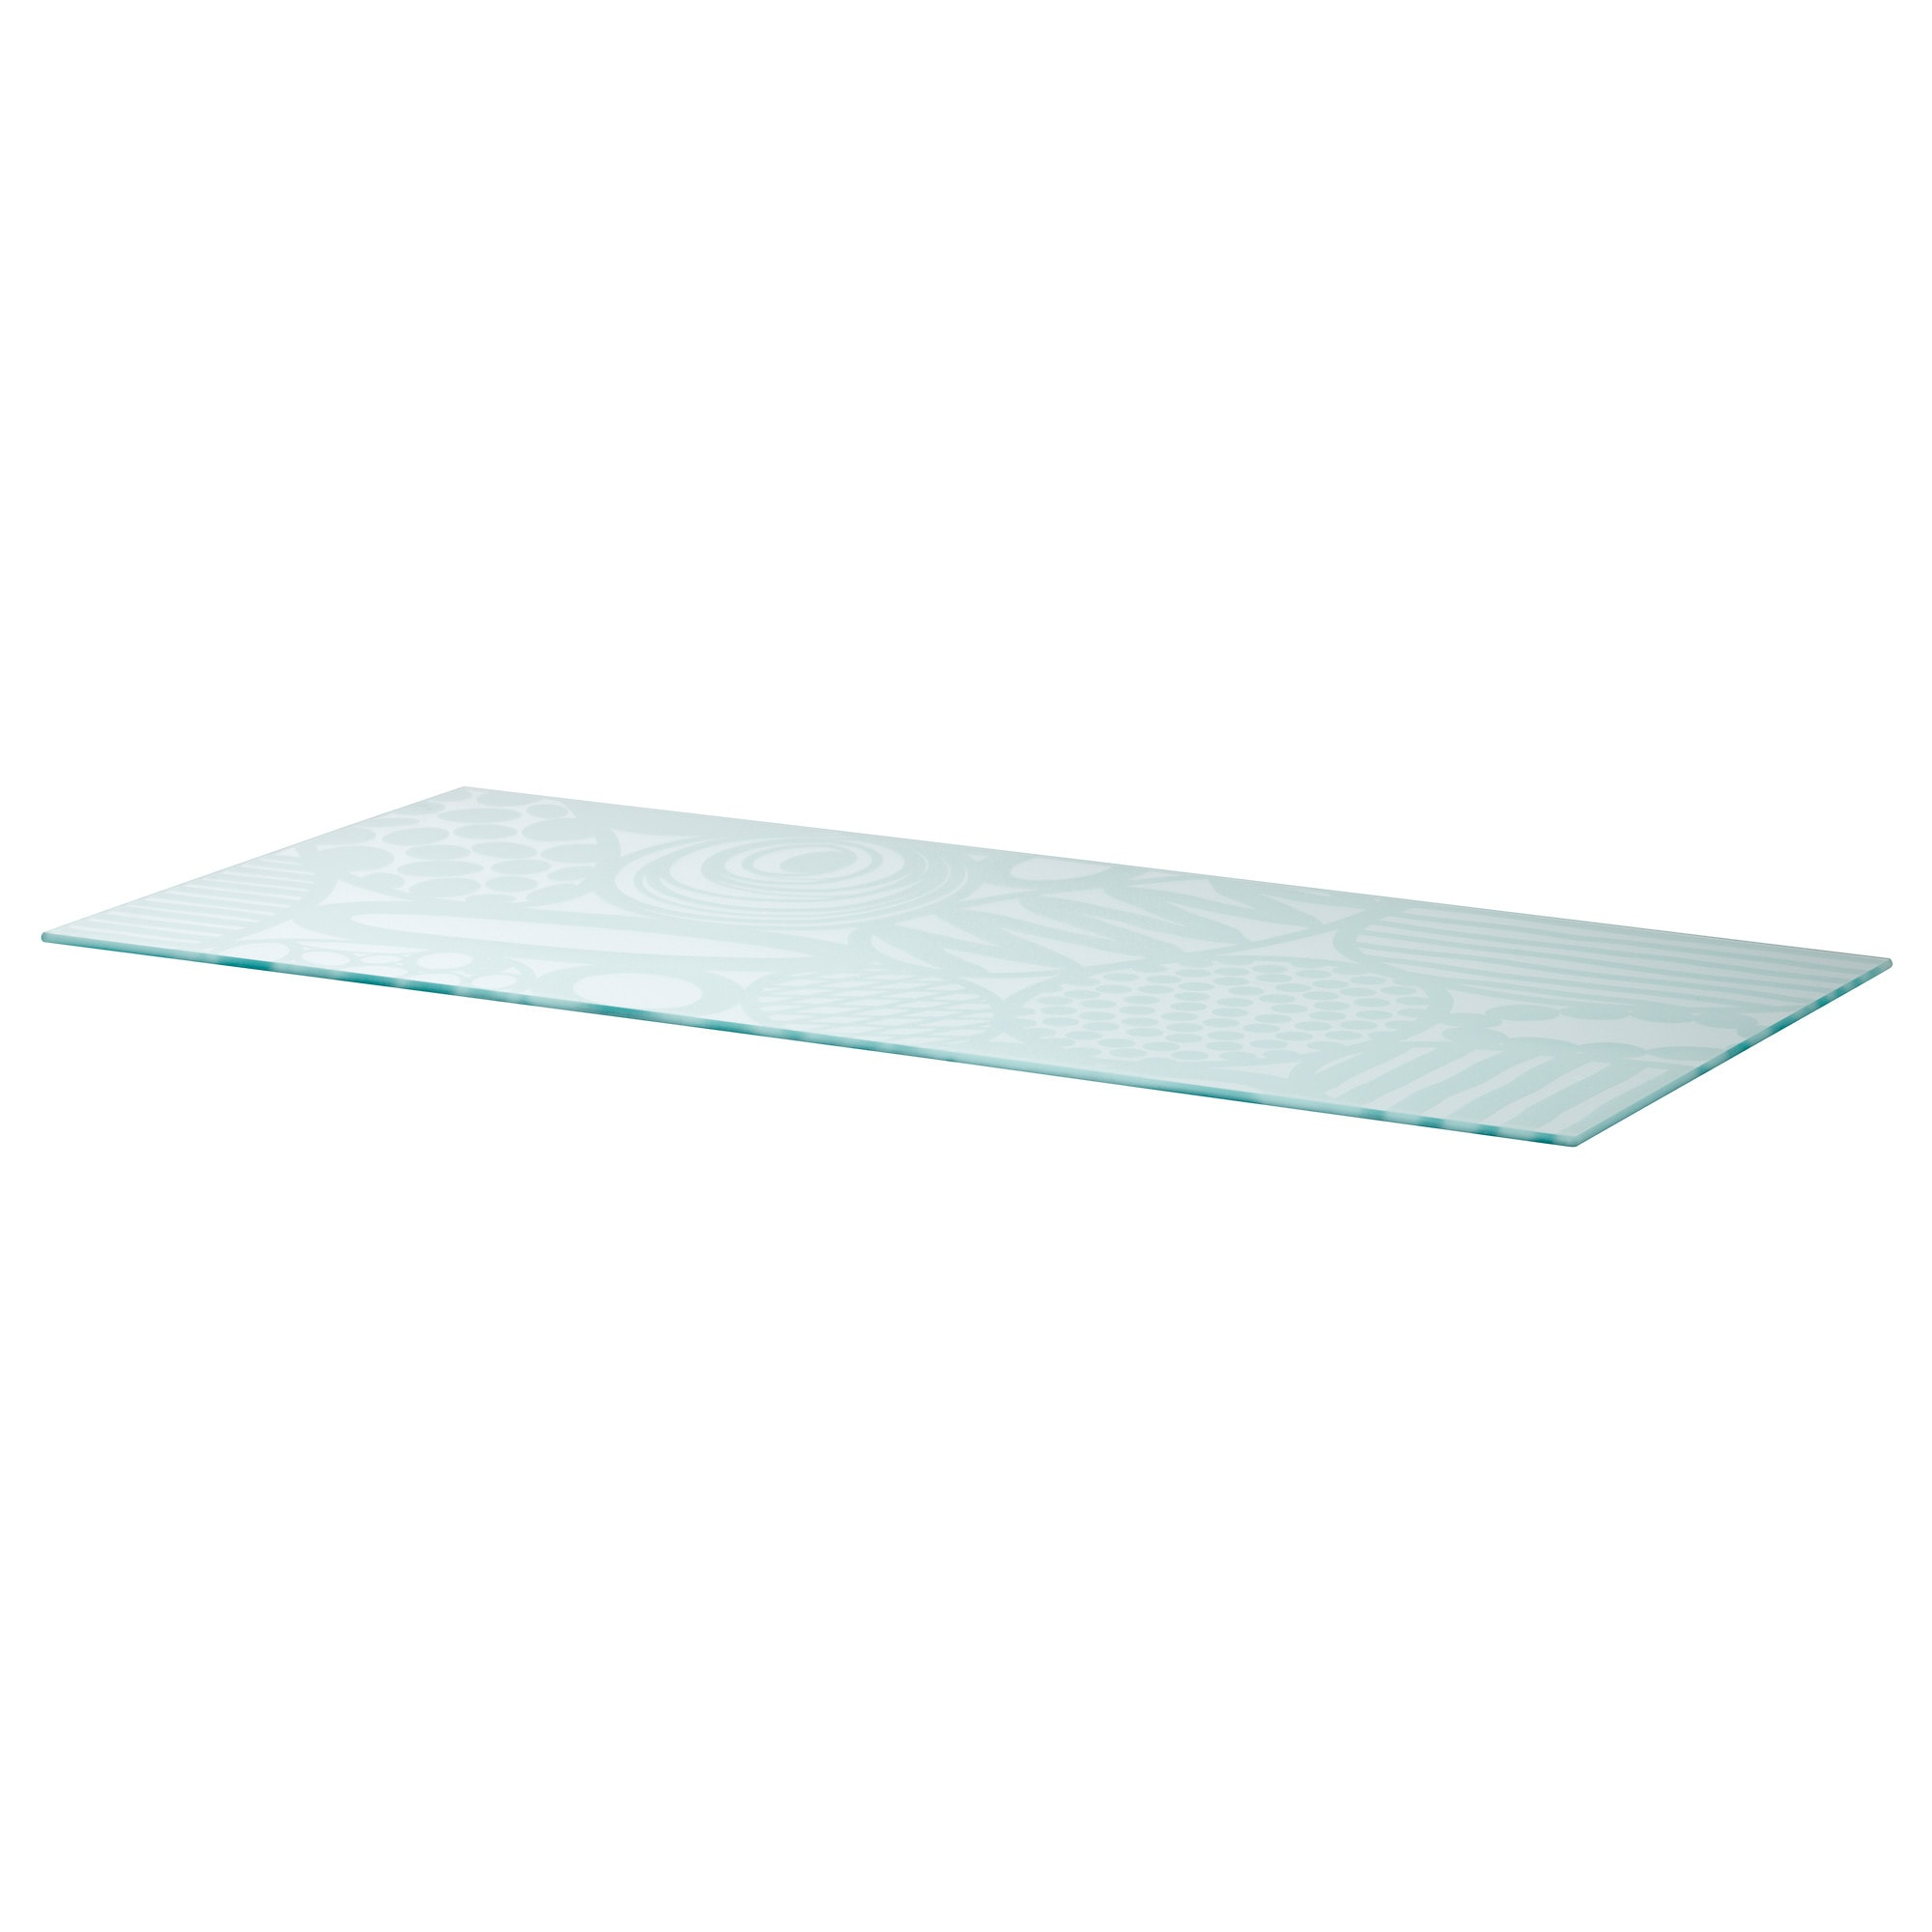 MODERN INTERIOR Protector For Table Tops